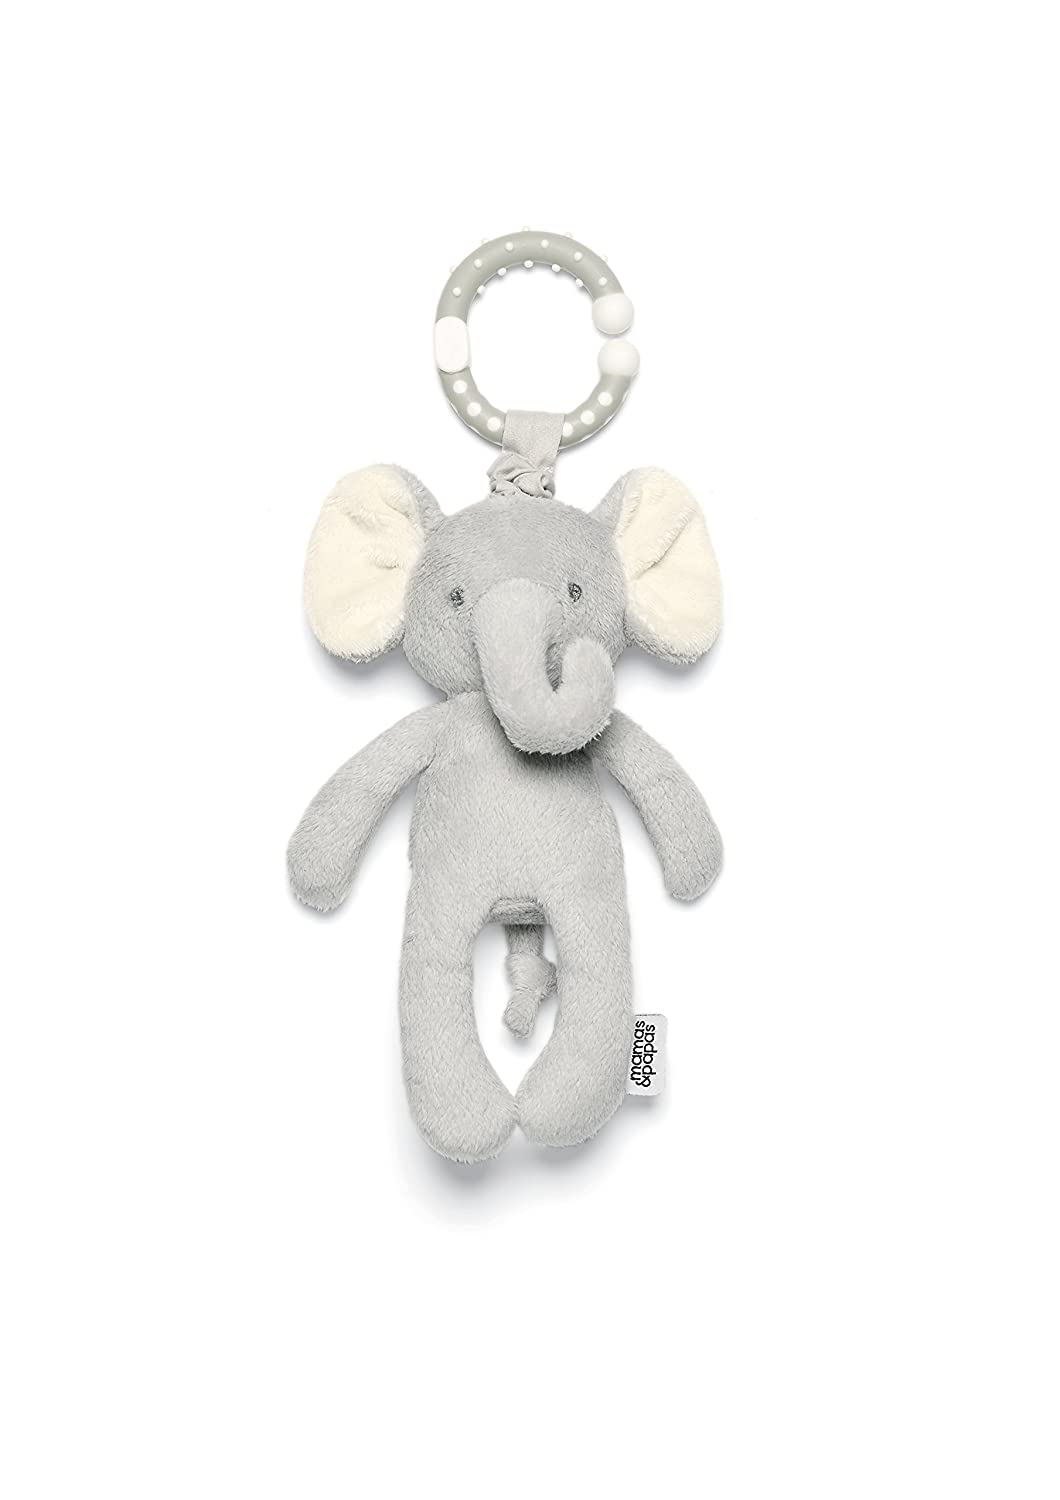 Mamas & Papas Jitter Elephant Travel Toy, Grey, Soft Toy, Baby/Infant Toy 4855AF720